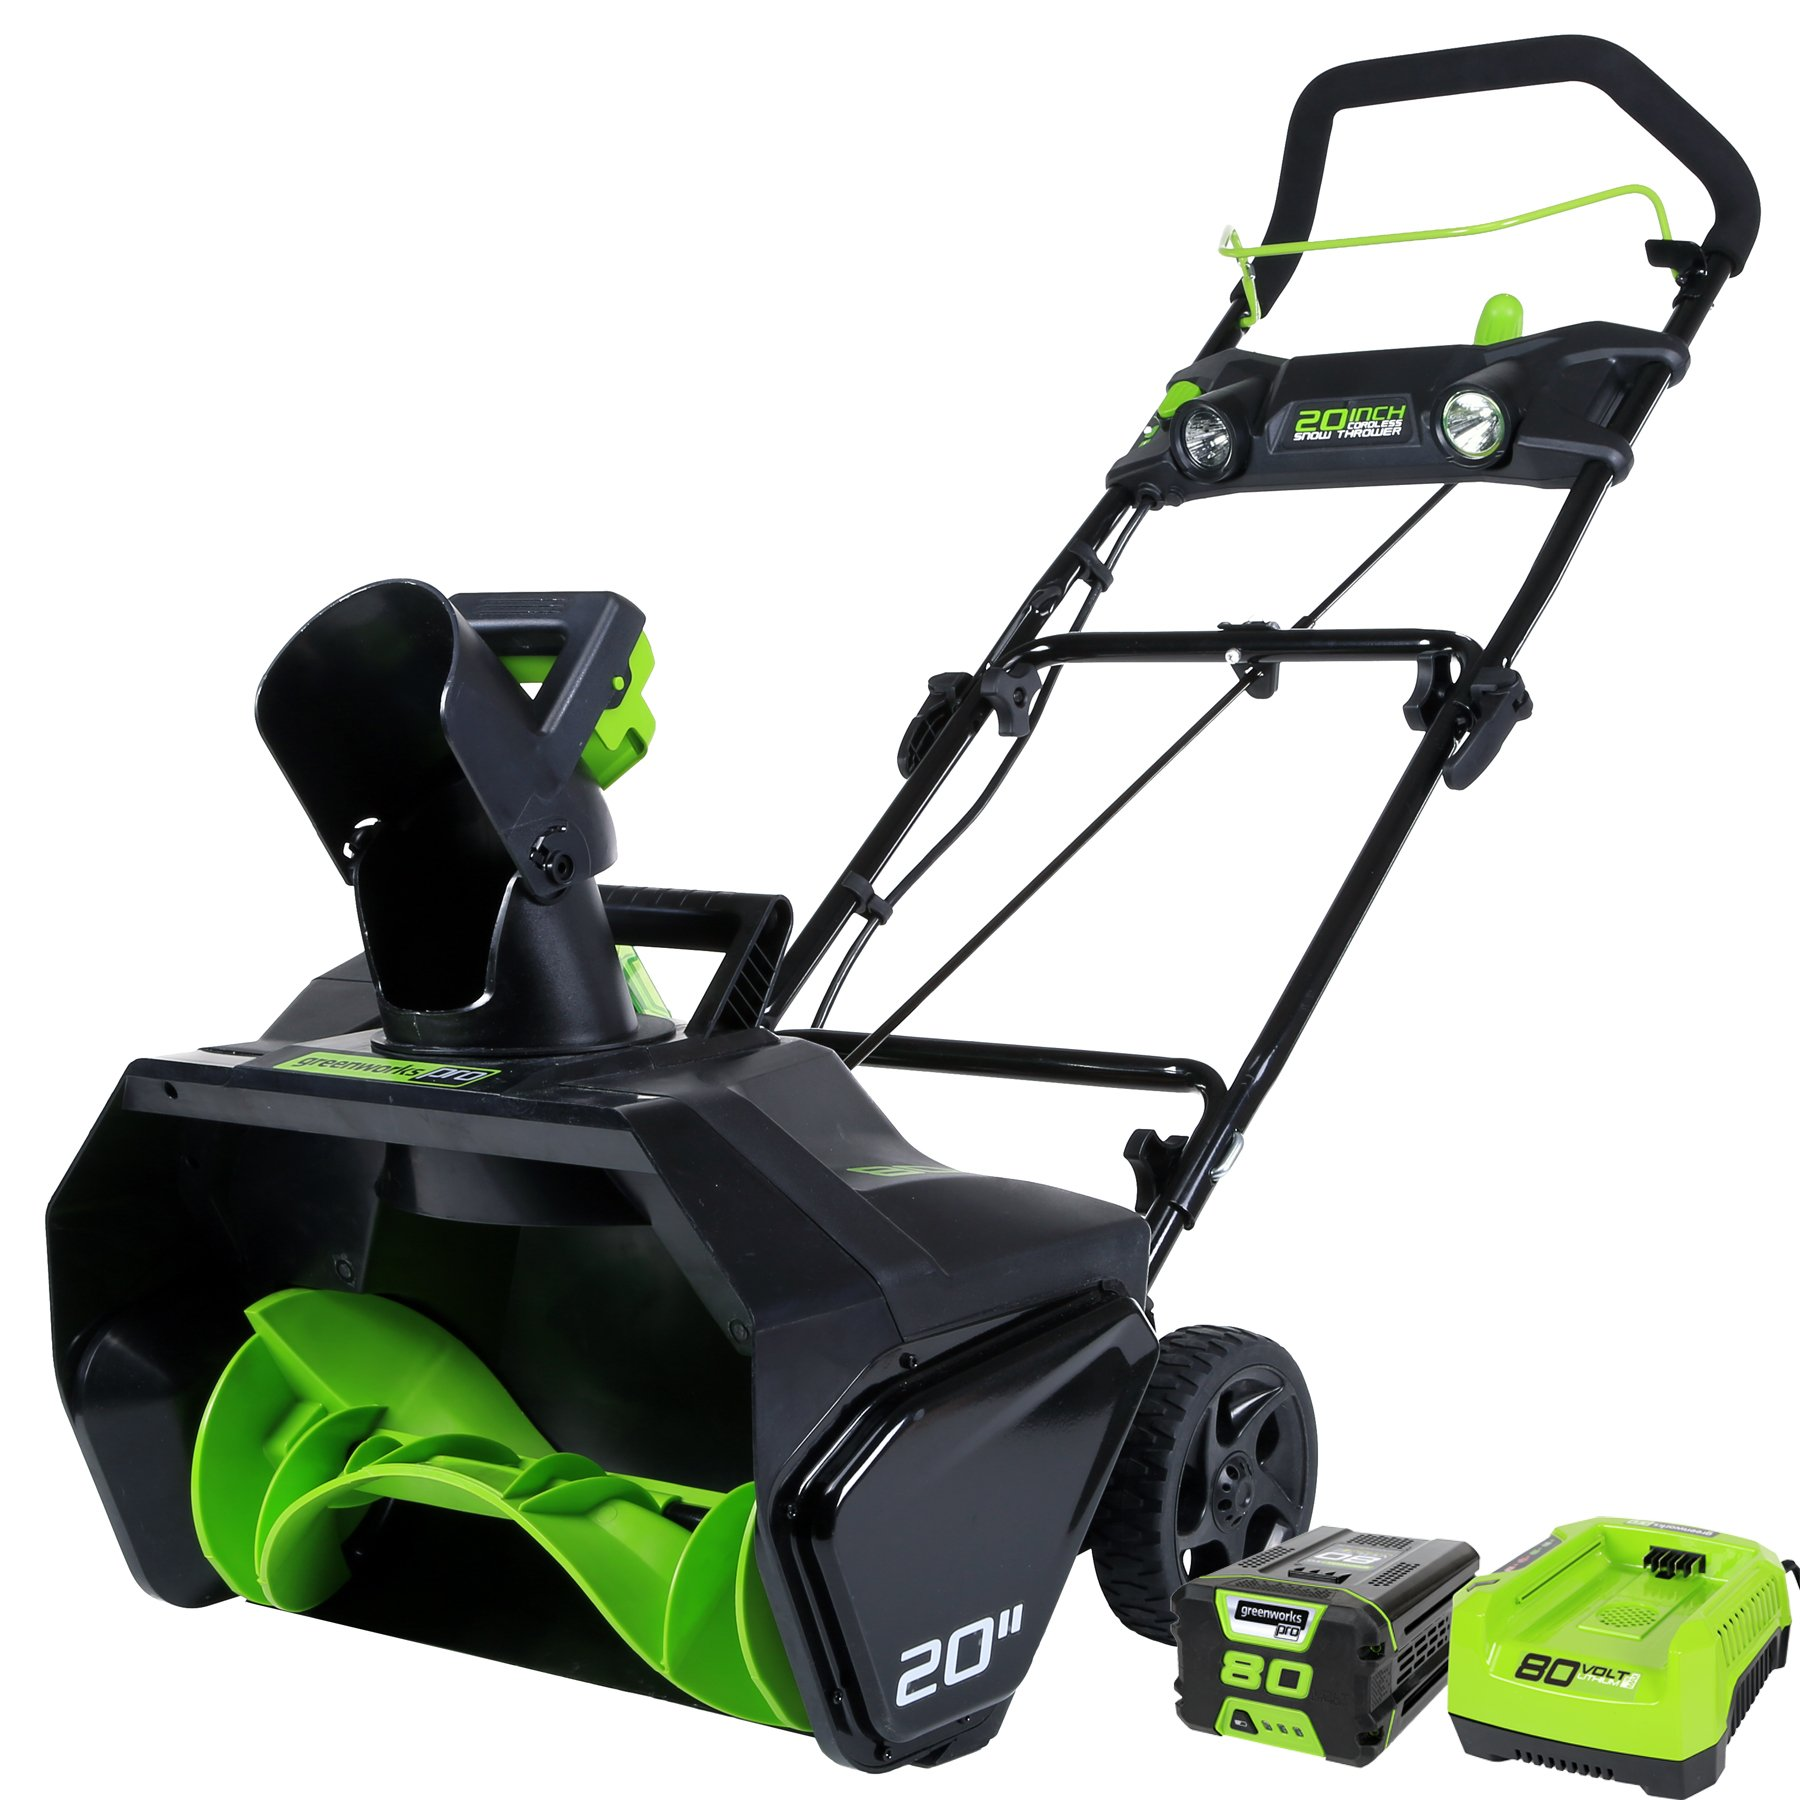 GreenWorks 2600402 Pro 80V 20-Inch Cordless Snow Thrower, 2Ah Battery & Charger Included by Greenworks